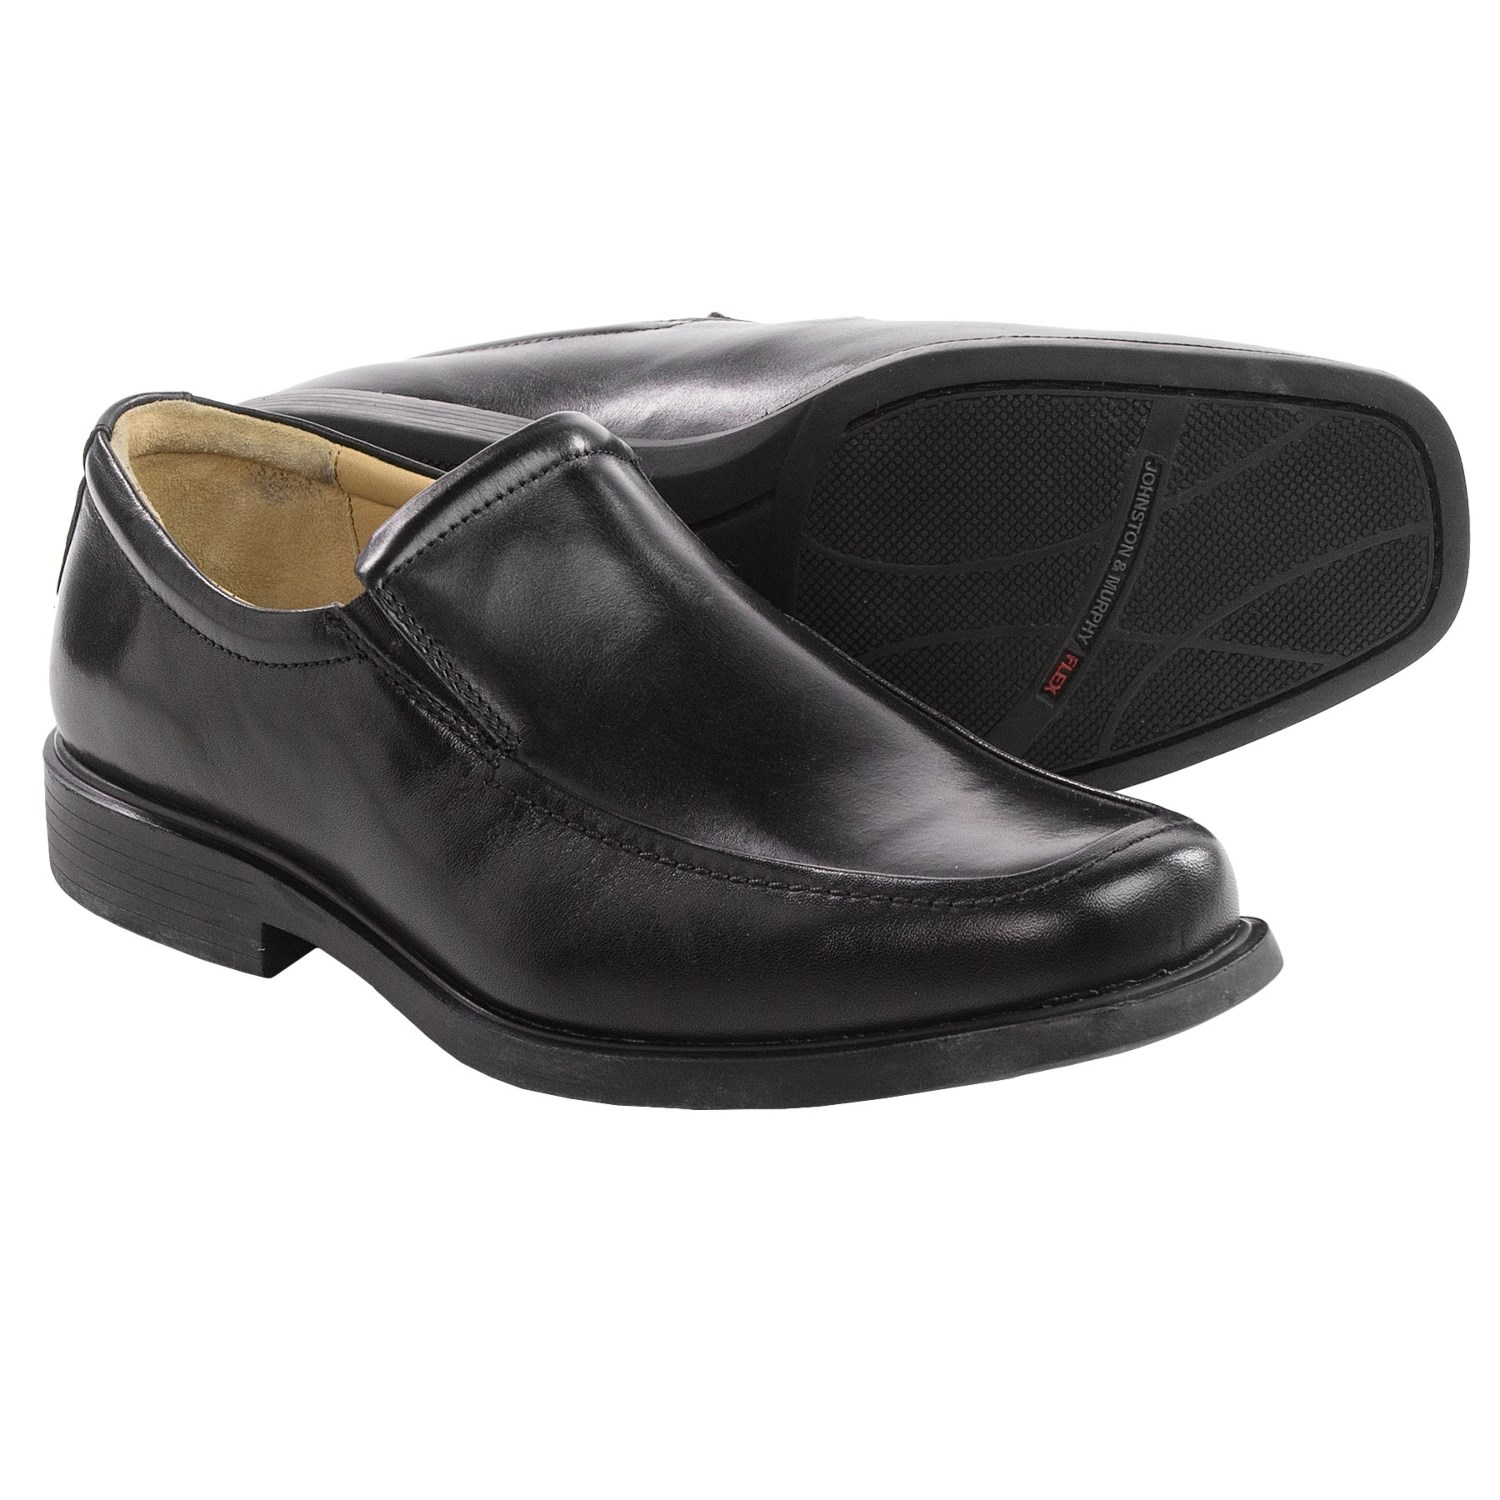 Buy Johnston & Murphy Mens Conard Cap Toe and other Shoes at believed-entrepreneur.ml Our wide selection is eligible for free shipping and free returns.